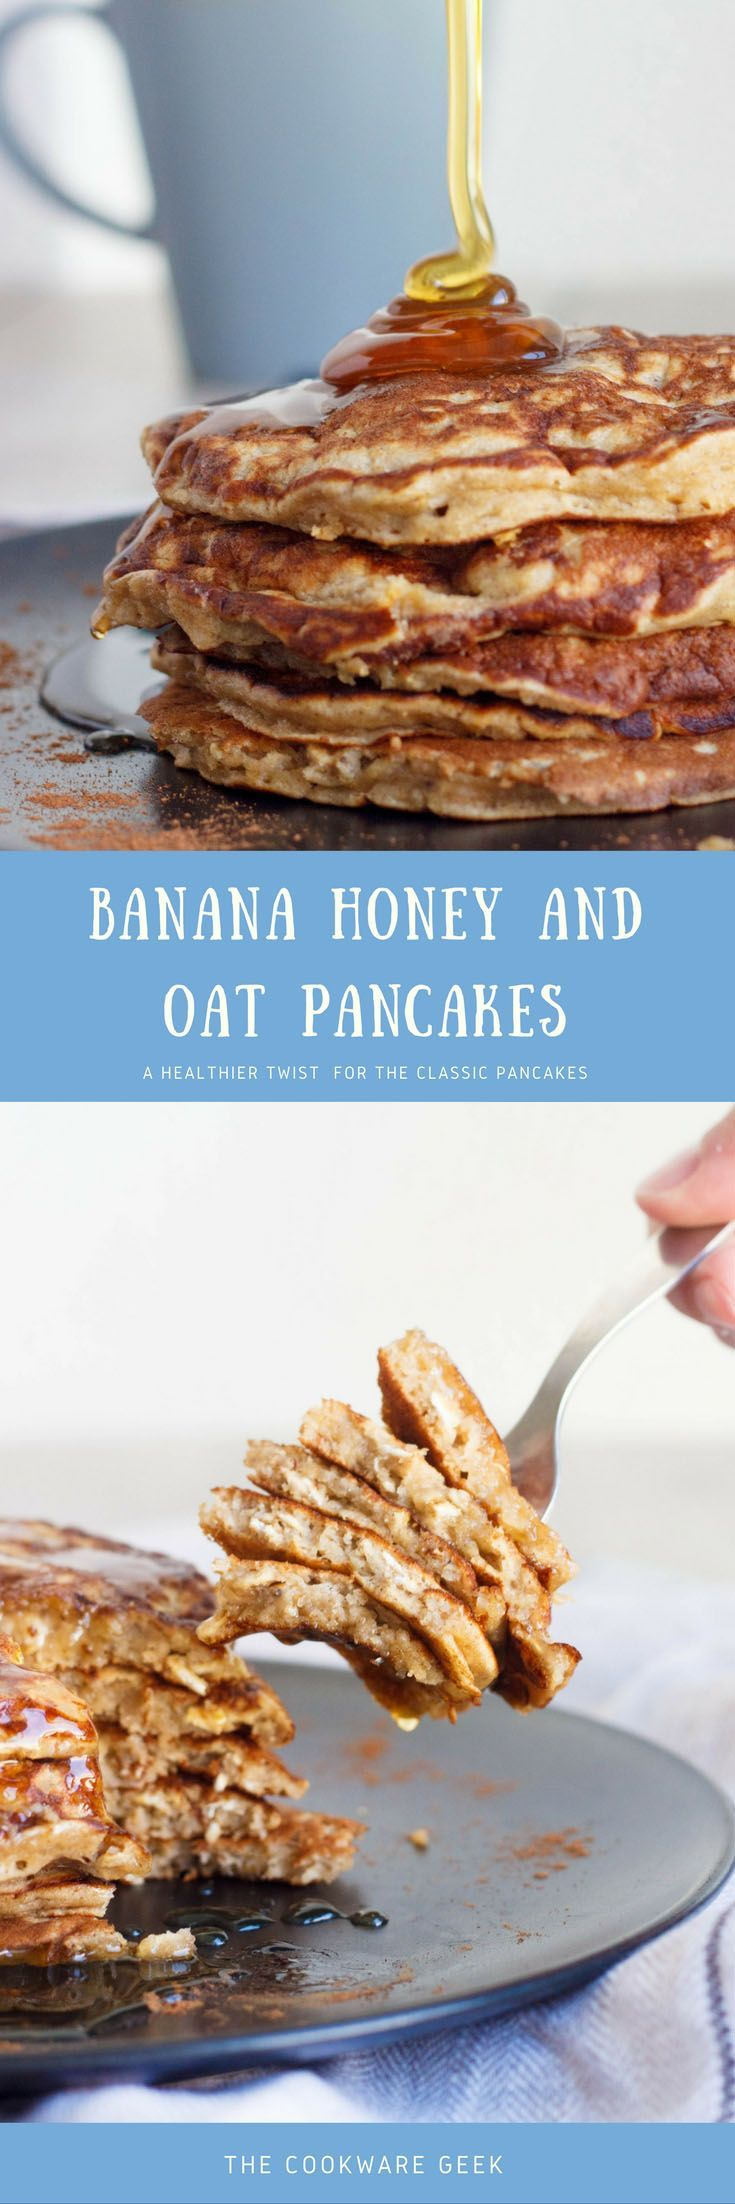 These pancakes are my favorite sweet healthy breakfast. They are really simple but still make me start my day with the right attitude. You can�t have a bad day after eating a pancake tower covered in honey.